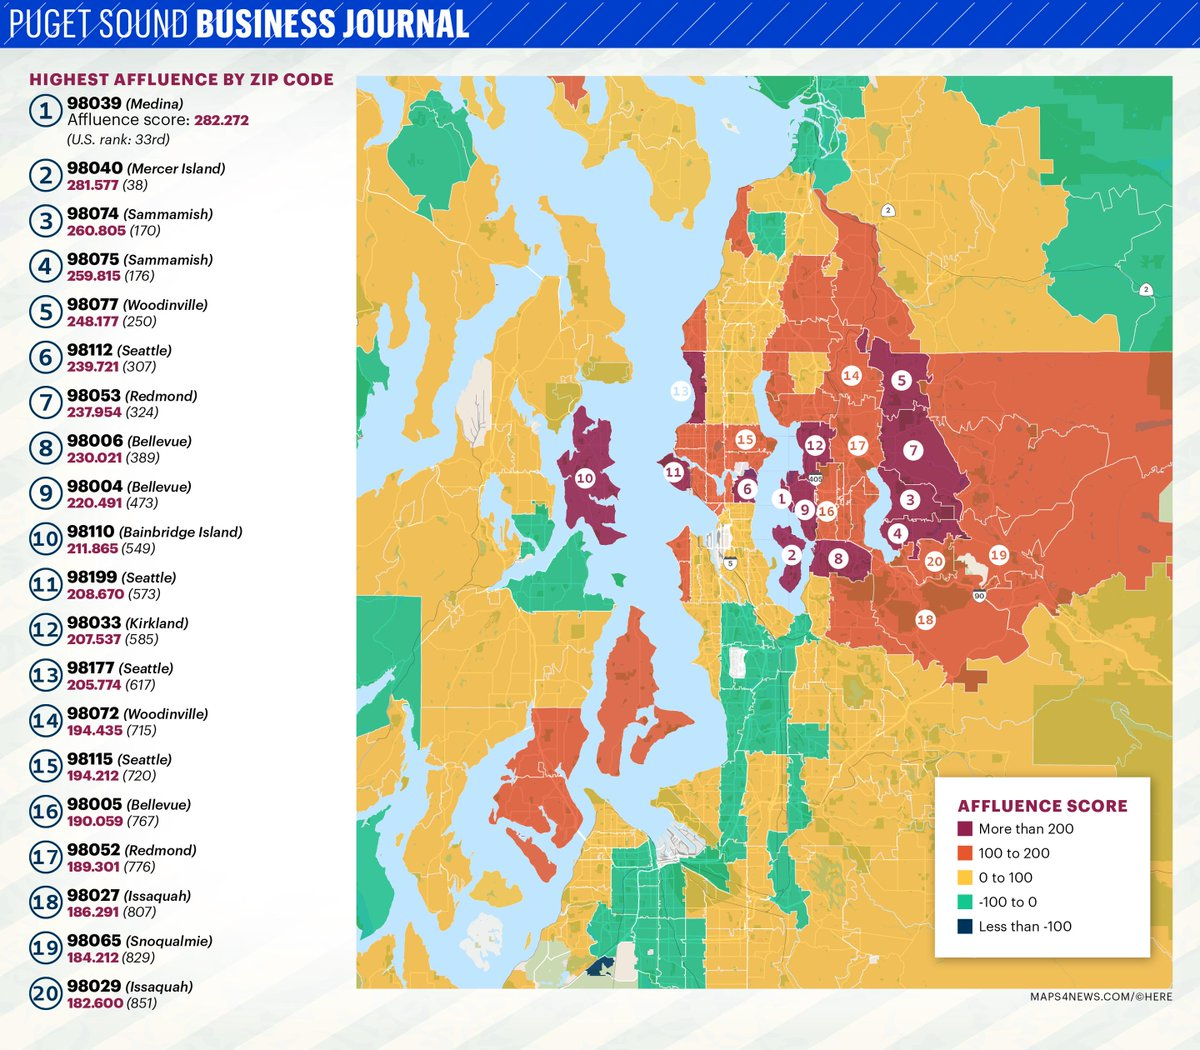 Here are Puget Sound area's wealthiest ZIP codes - on @PSBJ https://t.co/S1IGcyGRB2 https://t.co/hy2hBiq4fI